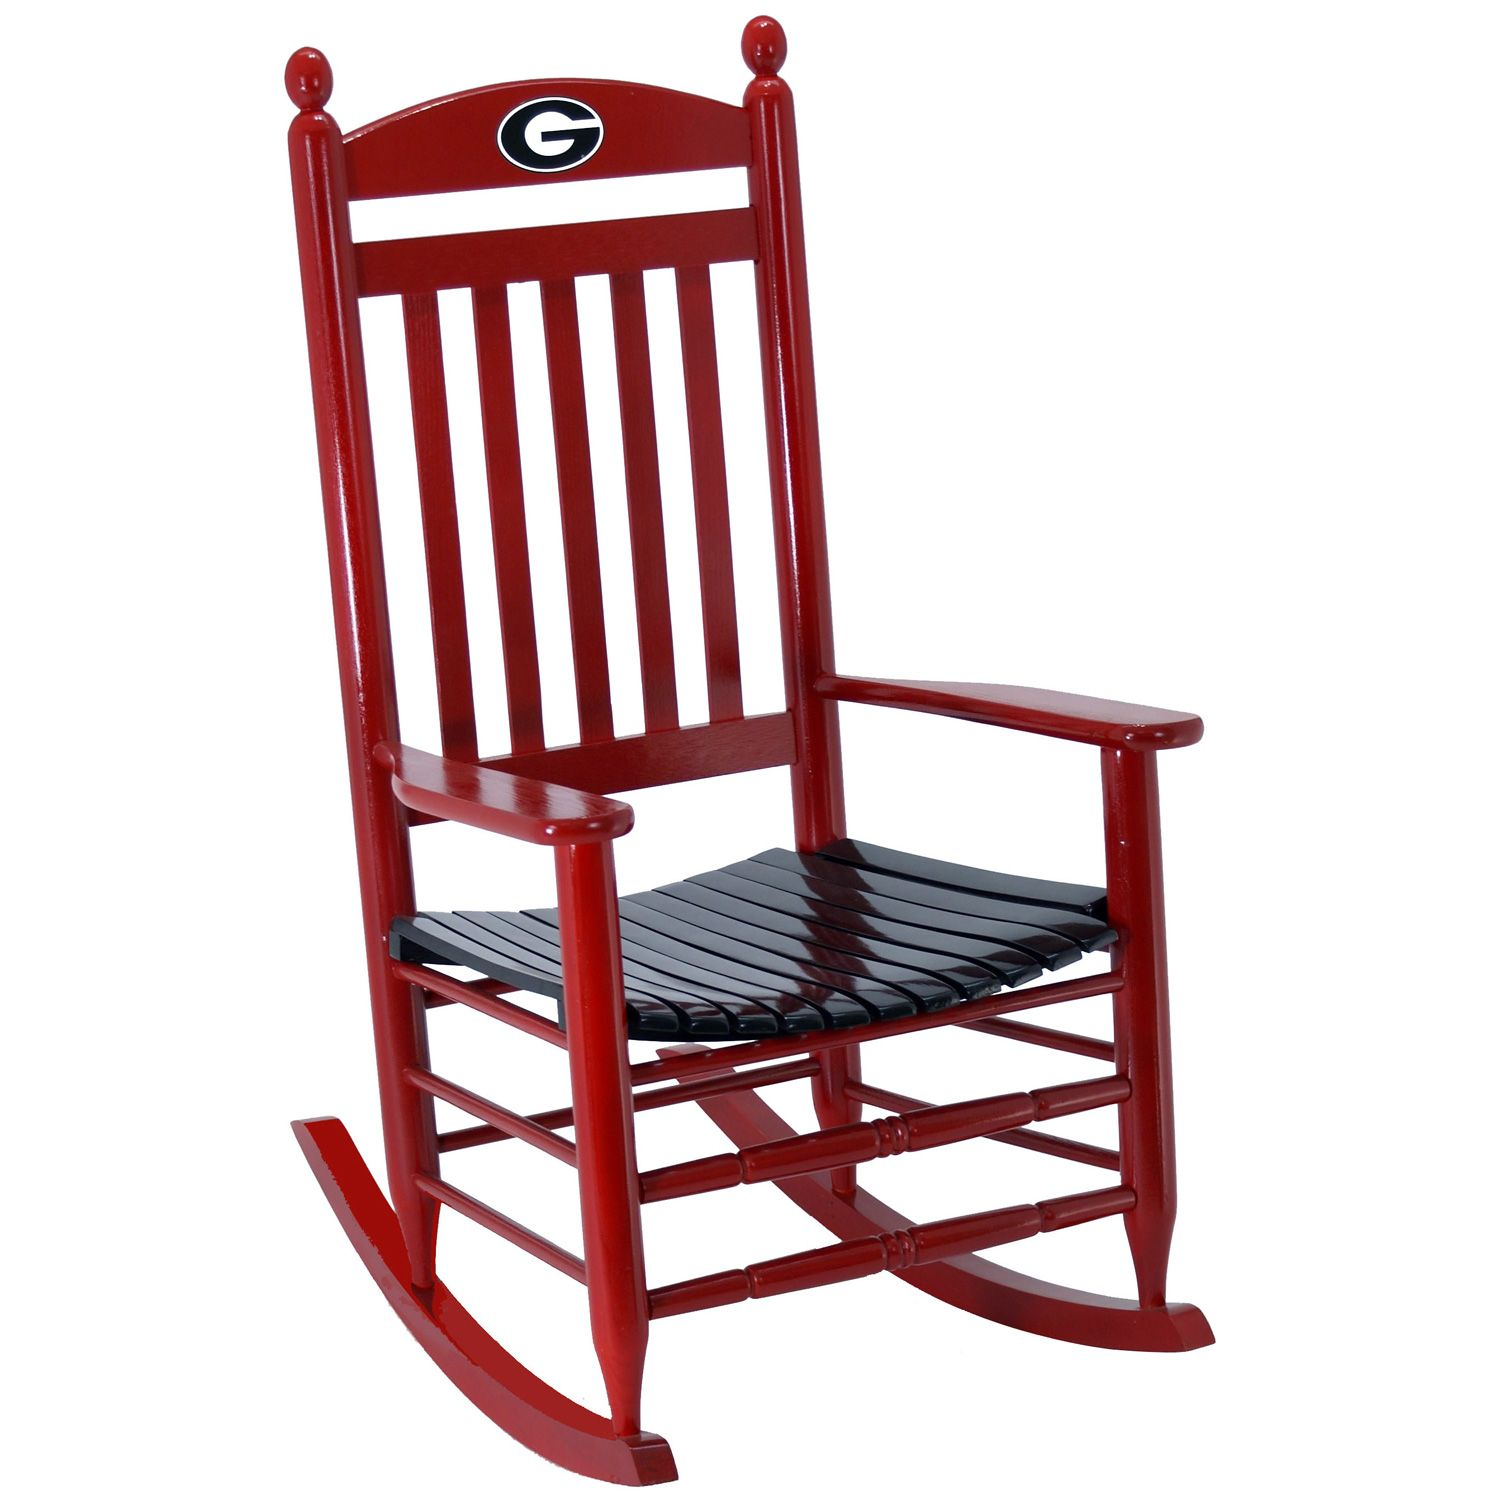 Super Georgia Bulldogs Rocking Chair Red Georgia Stuff Gmtry Best Dining Table And Chair Ideas Images Gmtryco